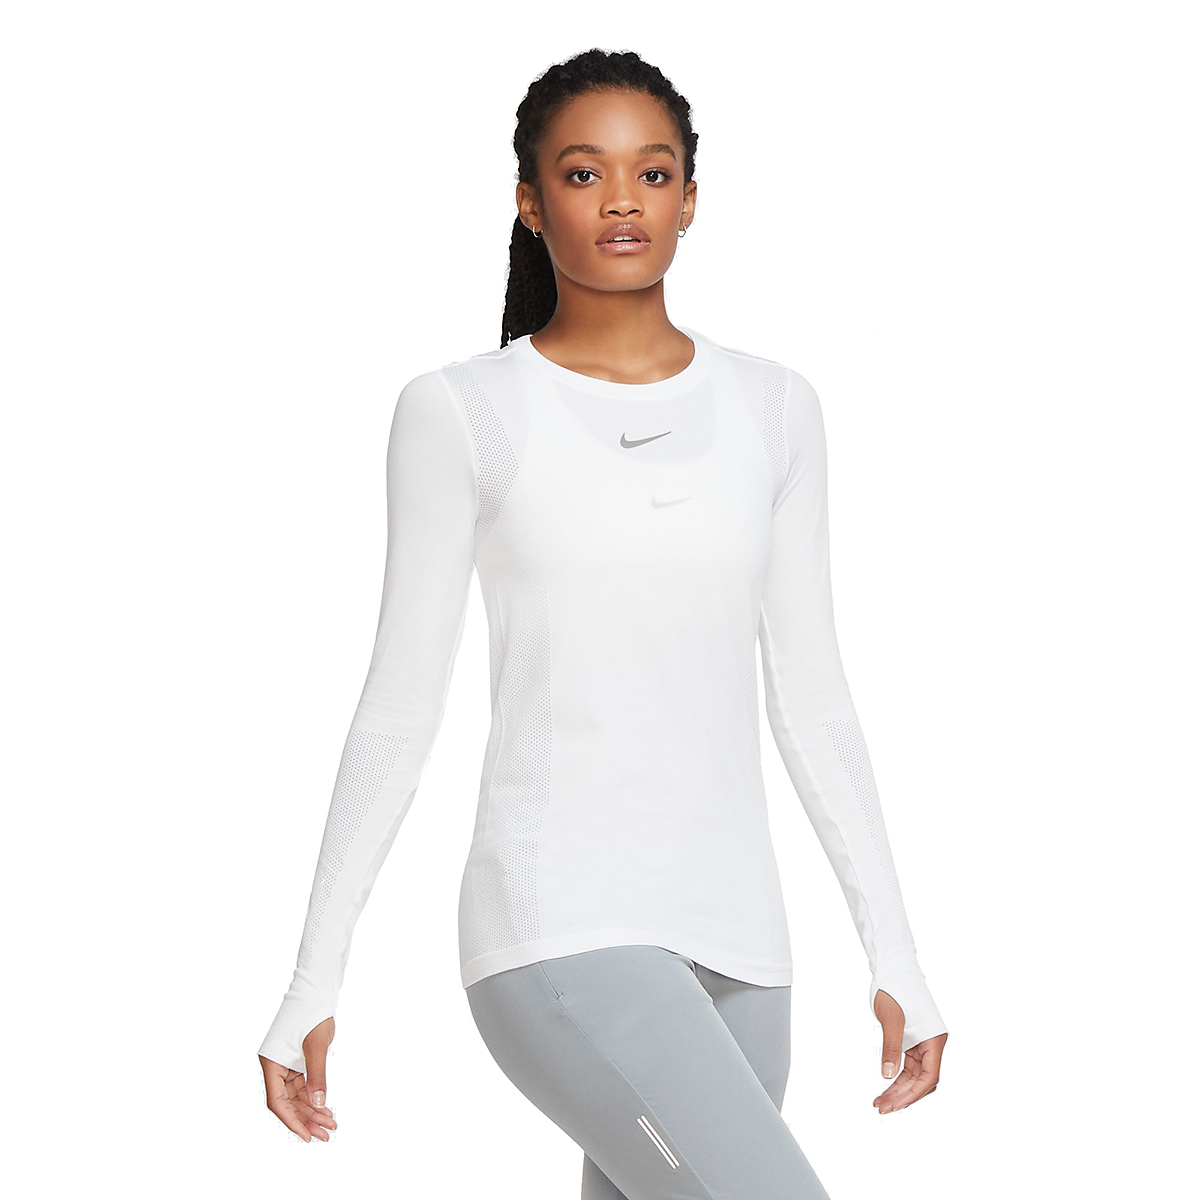 Women's Nike Infinite Running Top Long Sleeve - Color: White - Size: XS, White, large, image 1